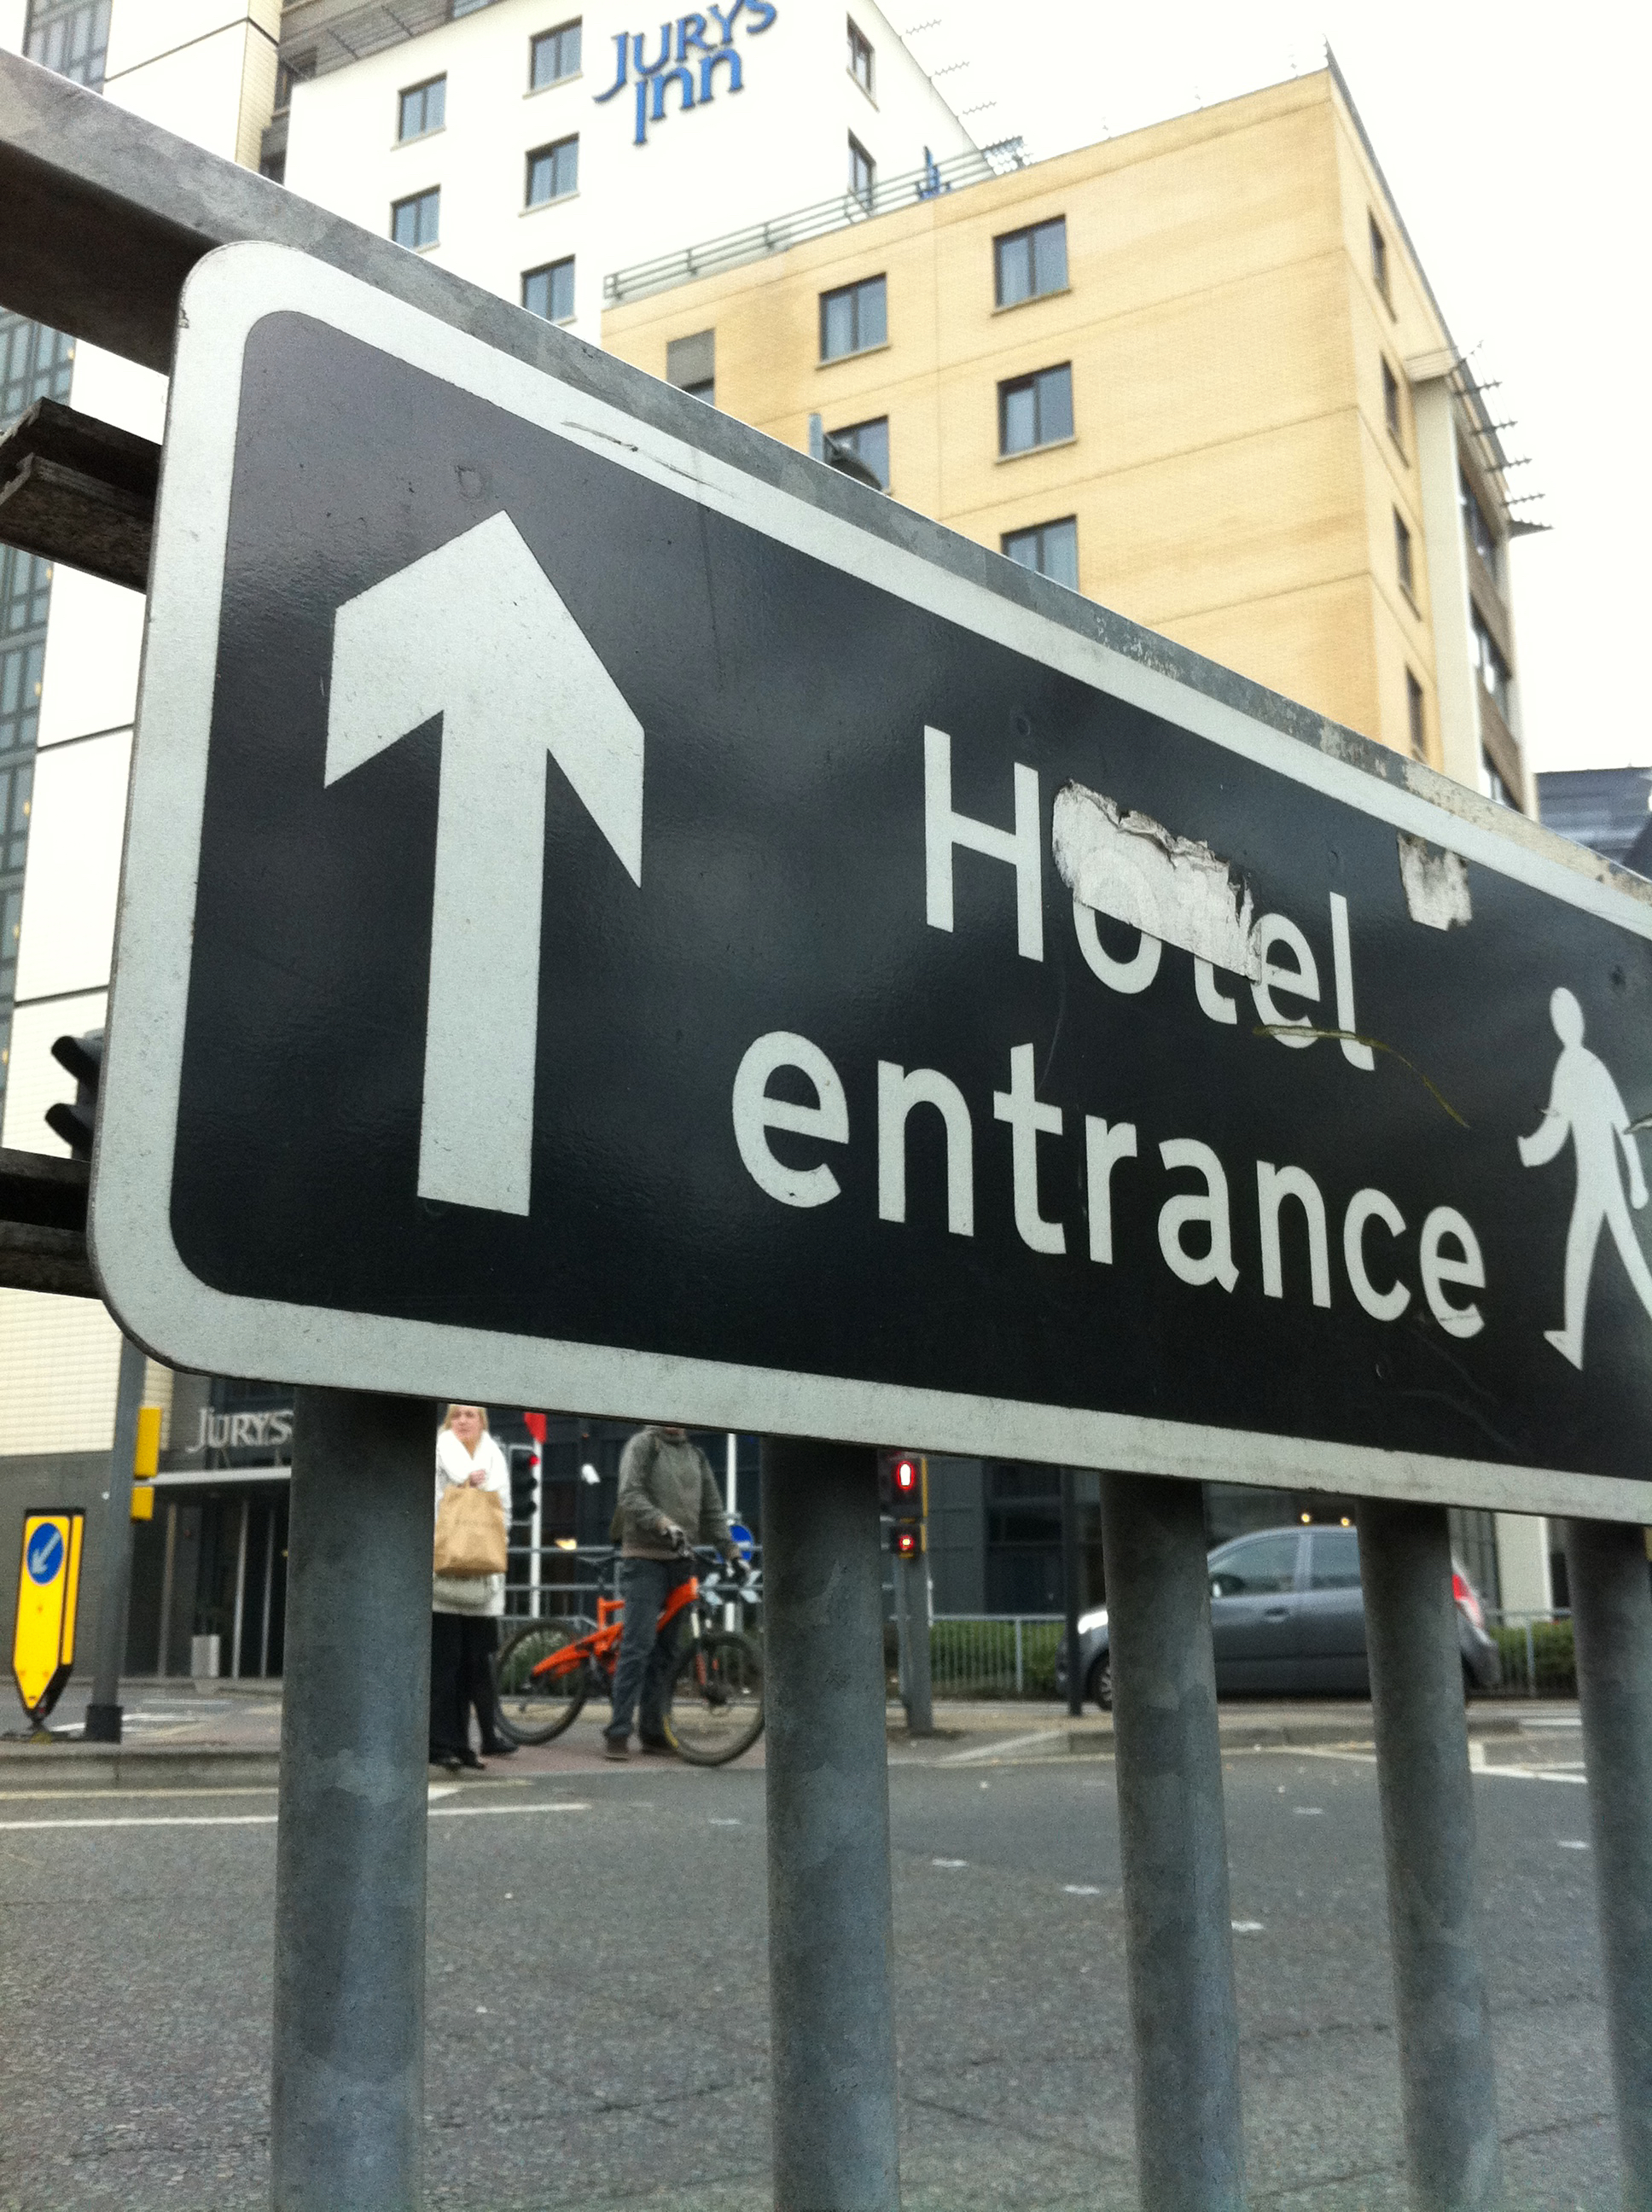 A sign attached to a railing at low level advising Hotel Entrance with a walking figurine and a vertically placed arrow. The photograph is taken from a low level showing the high rise Jurys Inn hotel in the background